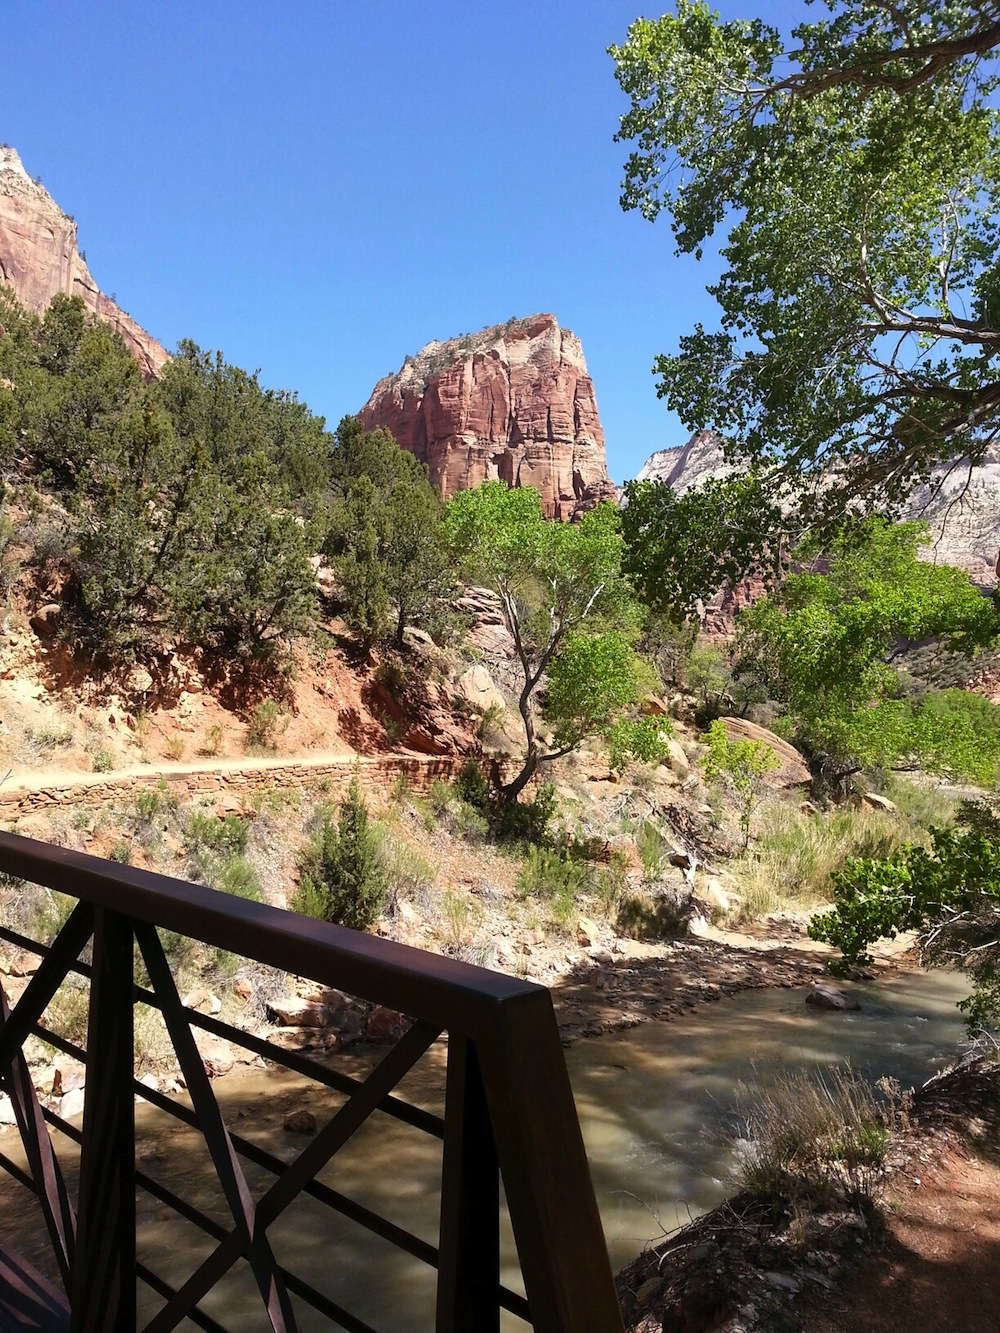 Crossing the bridge from the Grotto - Angel's Landing in the distance